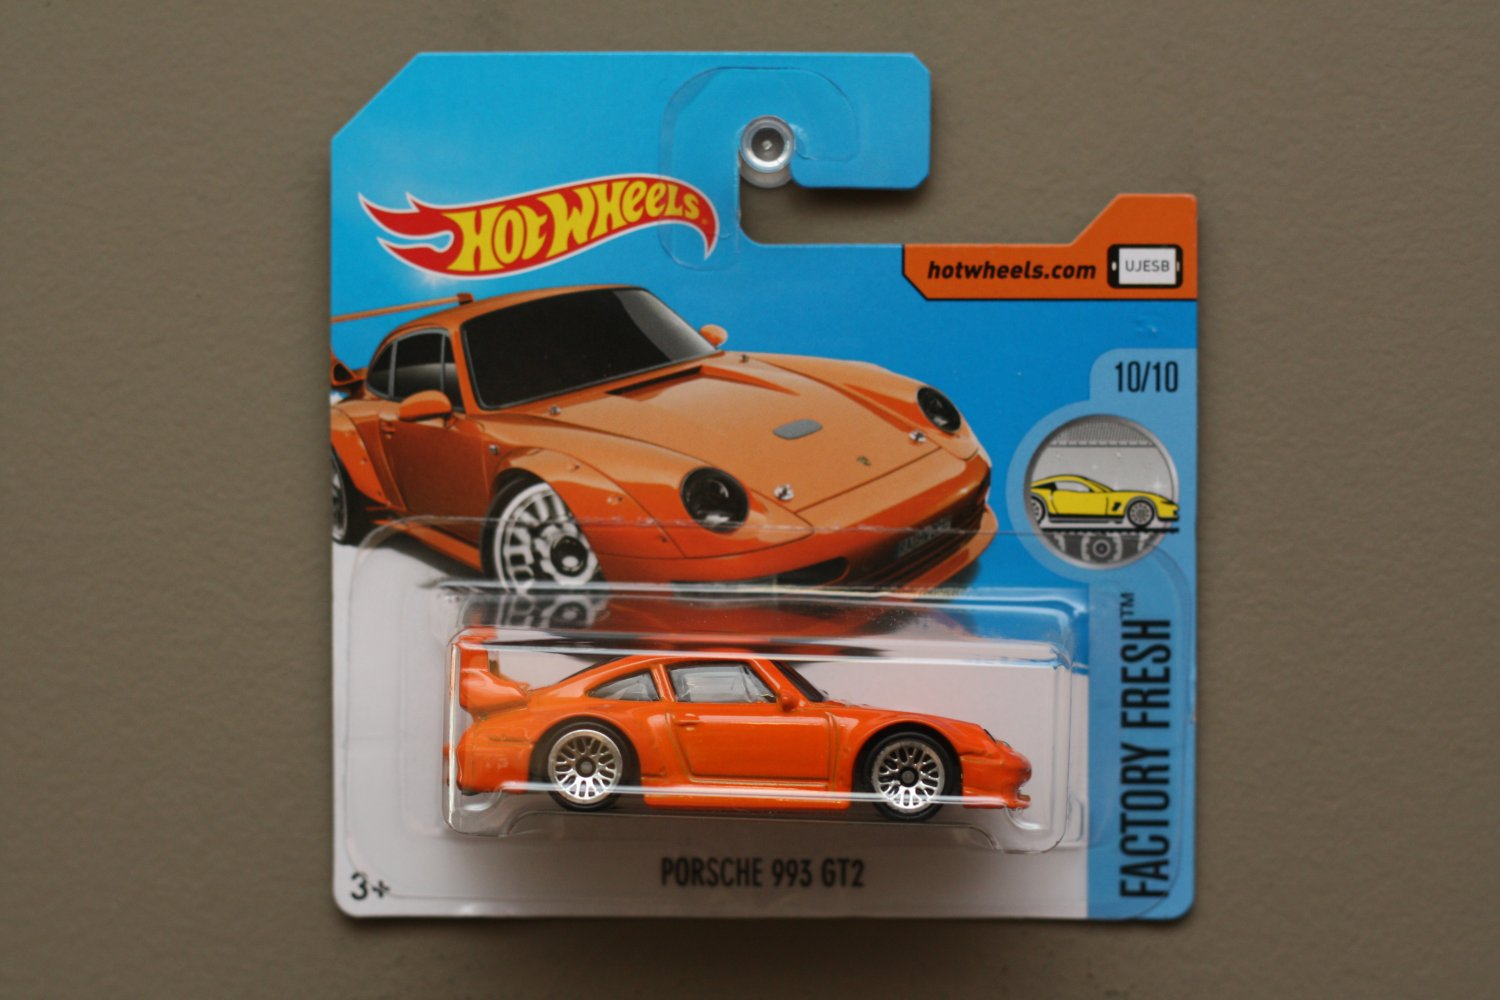 Hot Wheels 2017 Factory Fresh Porsche 993 GT2 (orange)